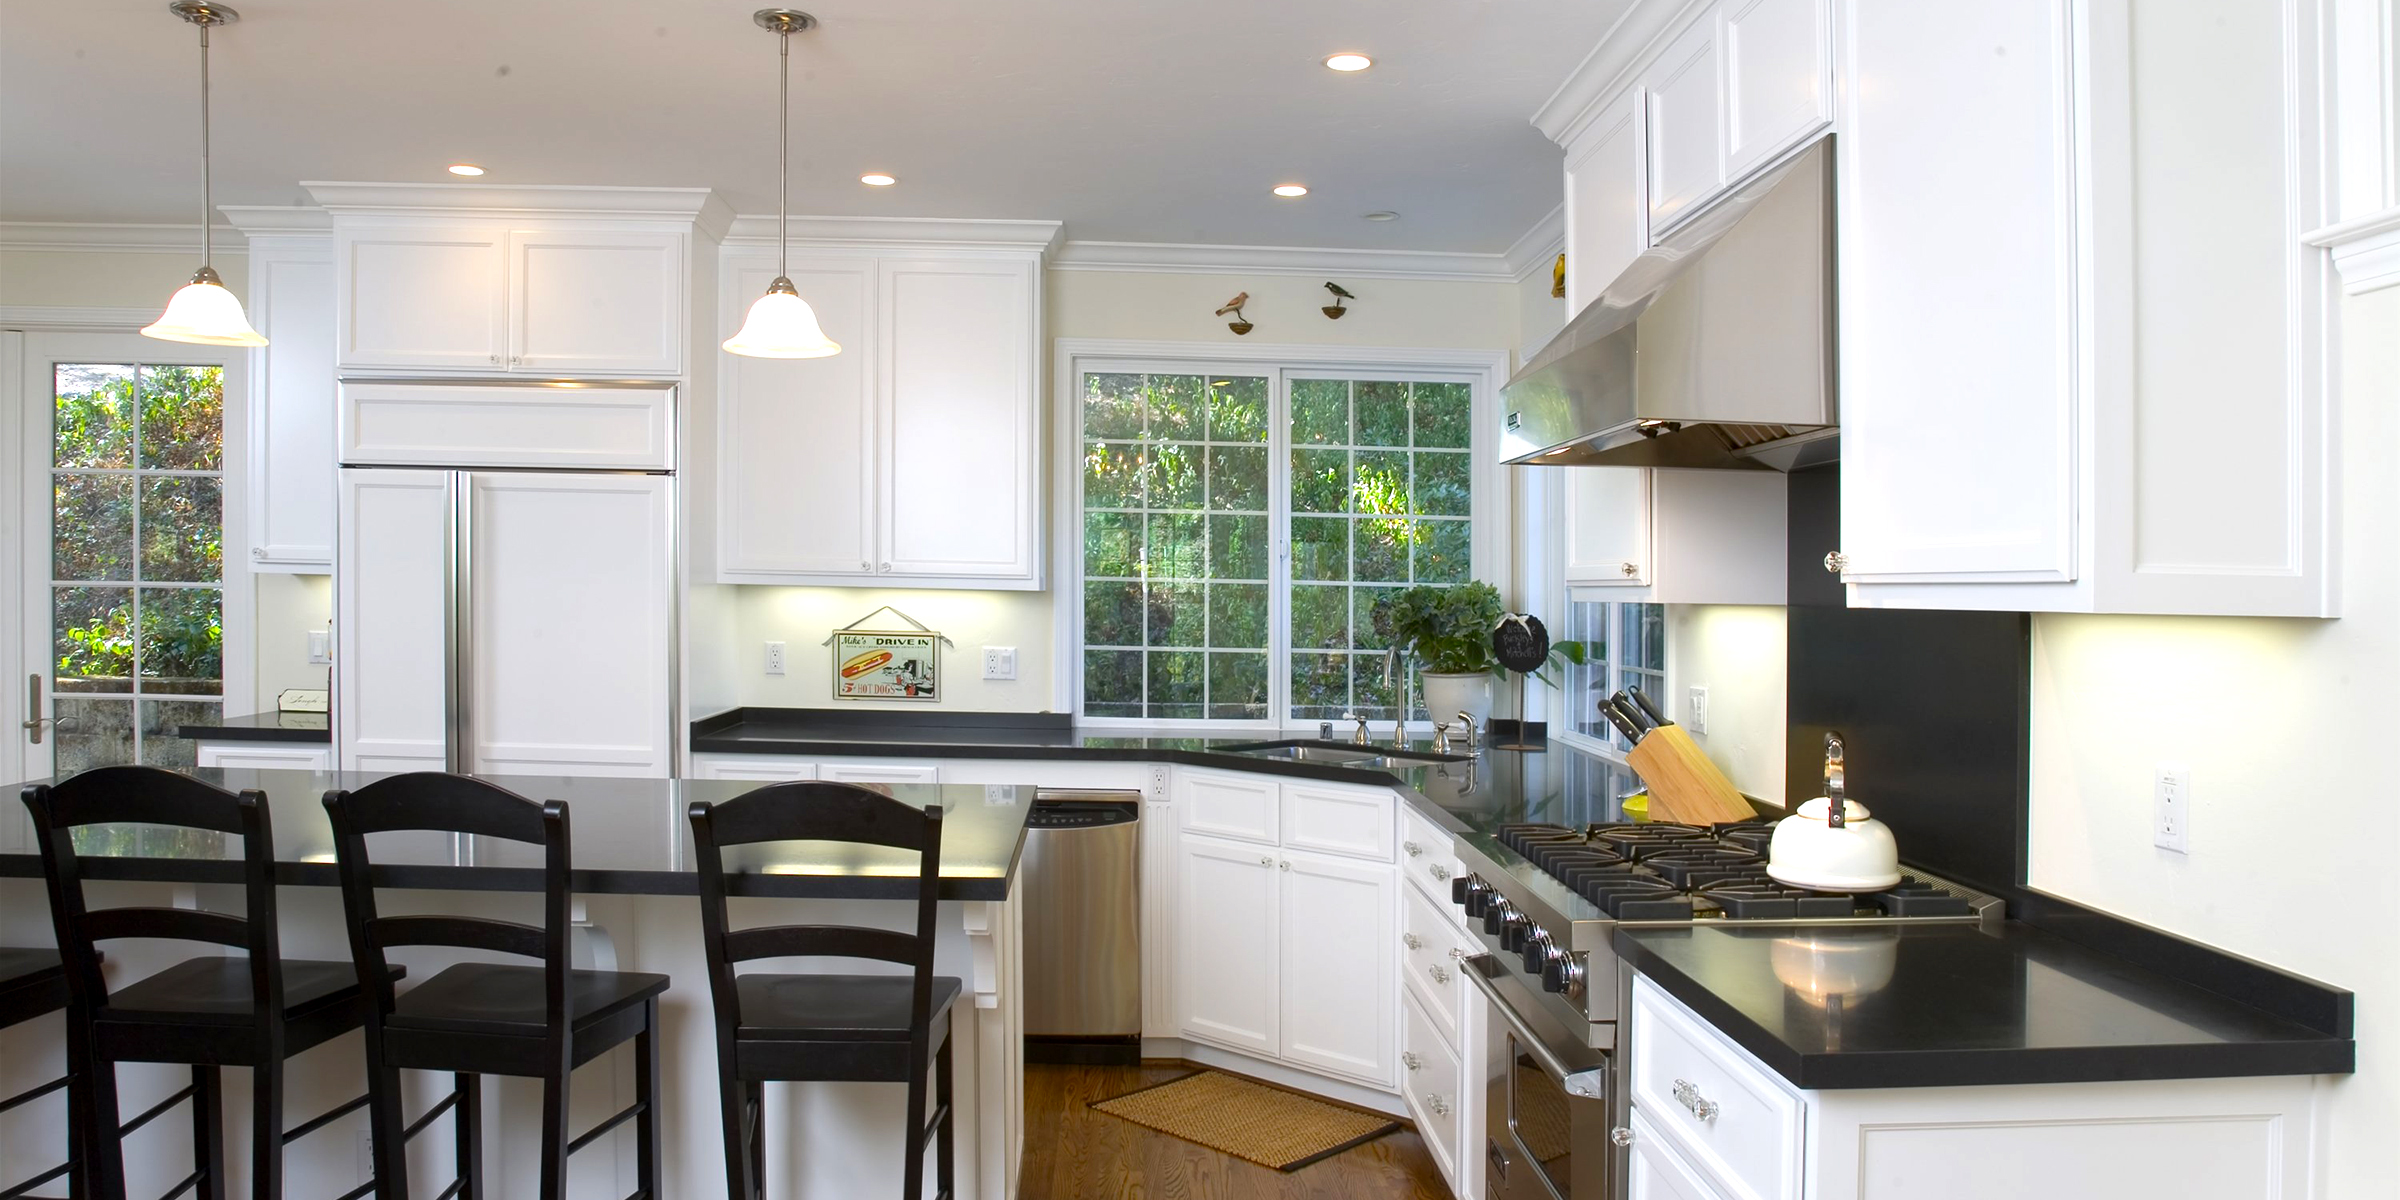 Kitchen Remodel Cost Where To Spend